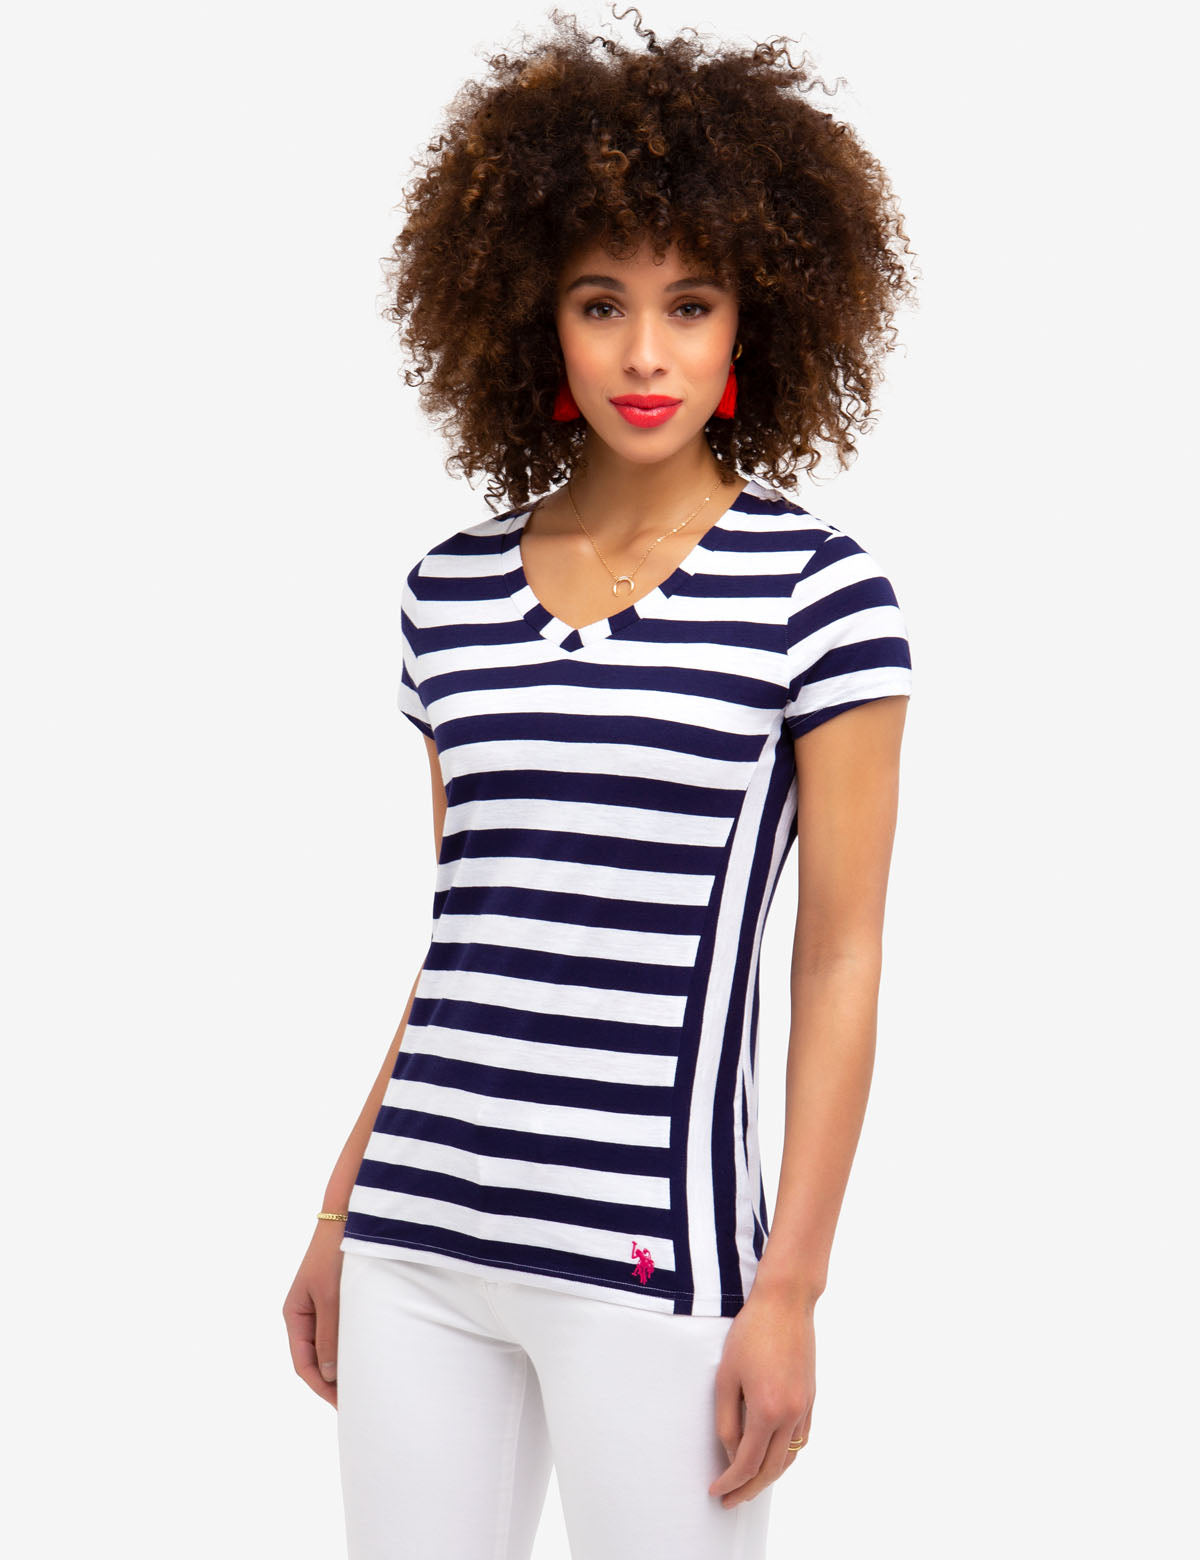 MIXED STRIPED tee-shirt